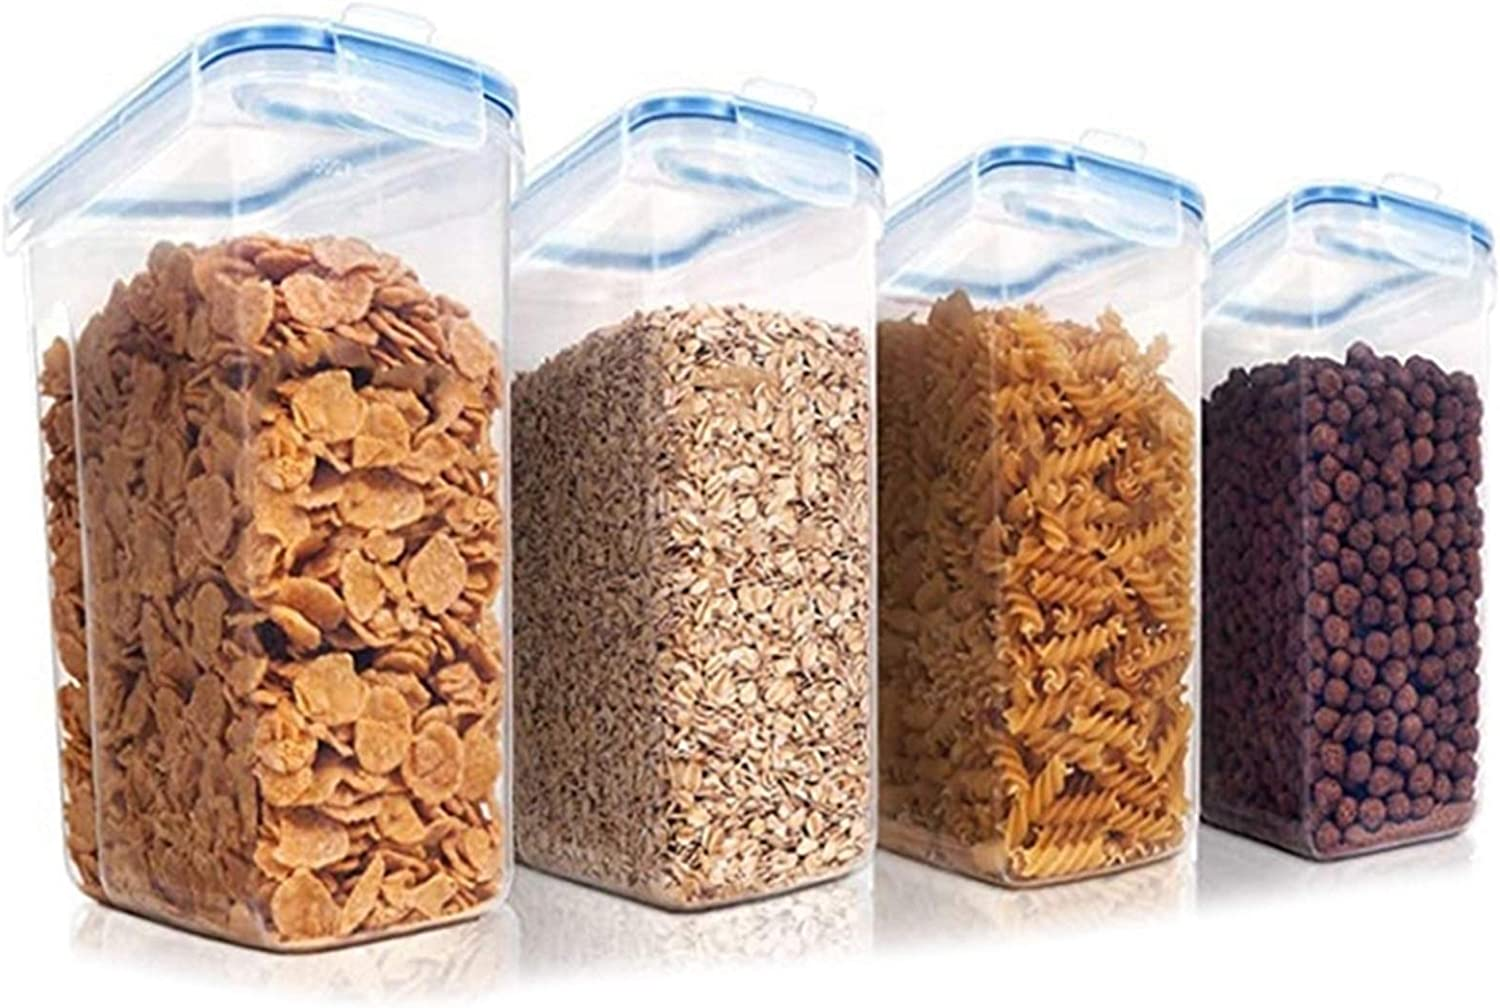 4 Piece Los Angeles Mall Set Cereal New sales Plast Container Storage Dispensers